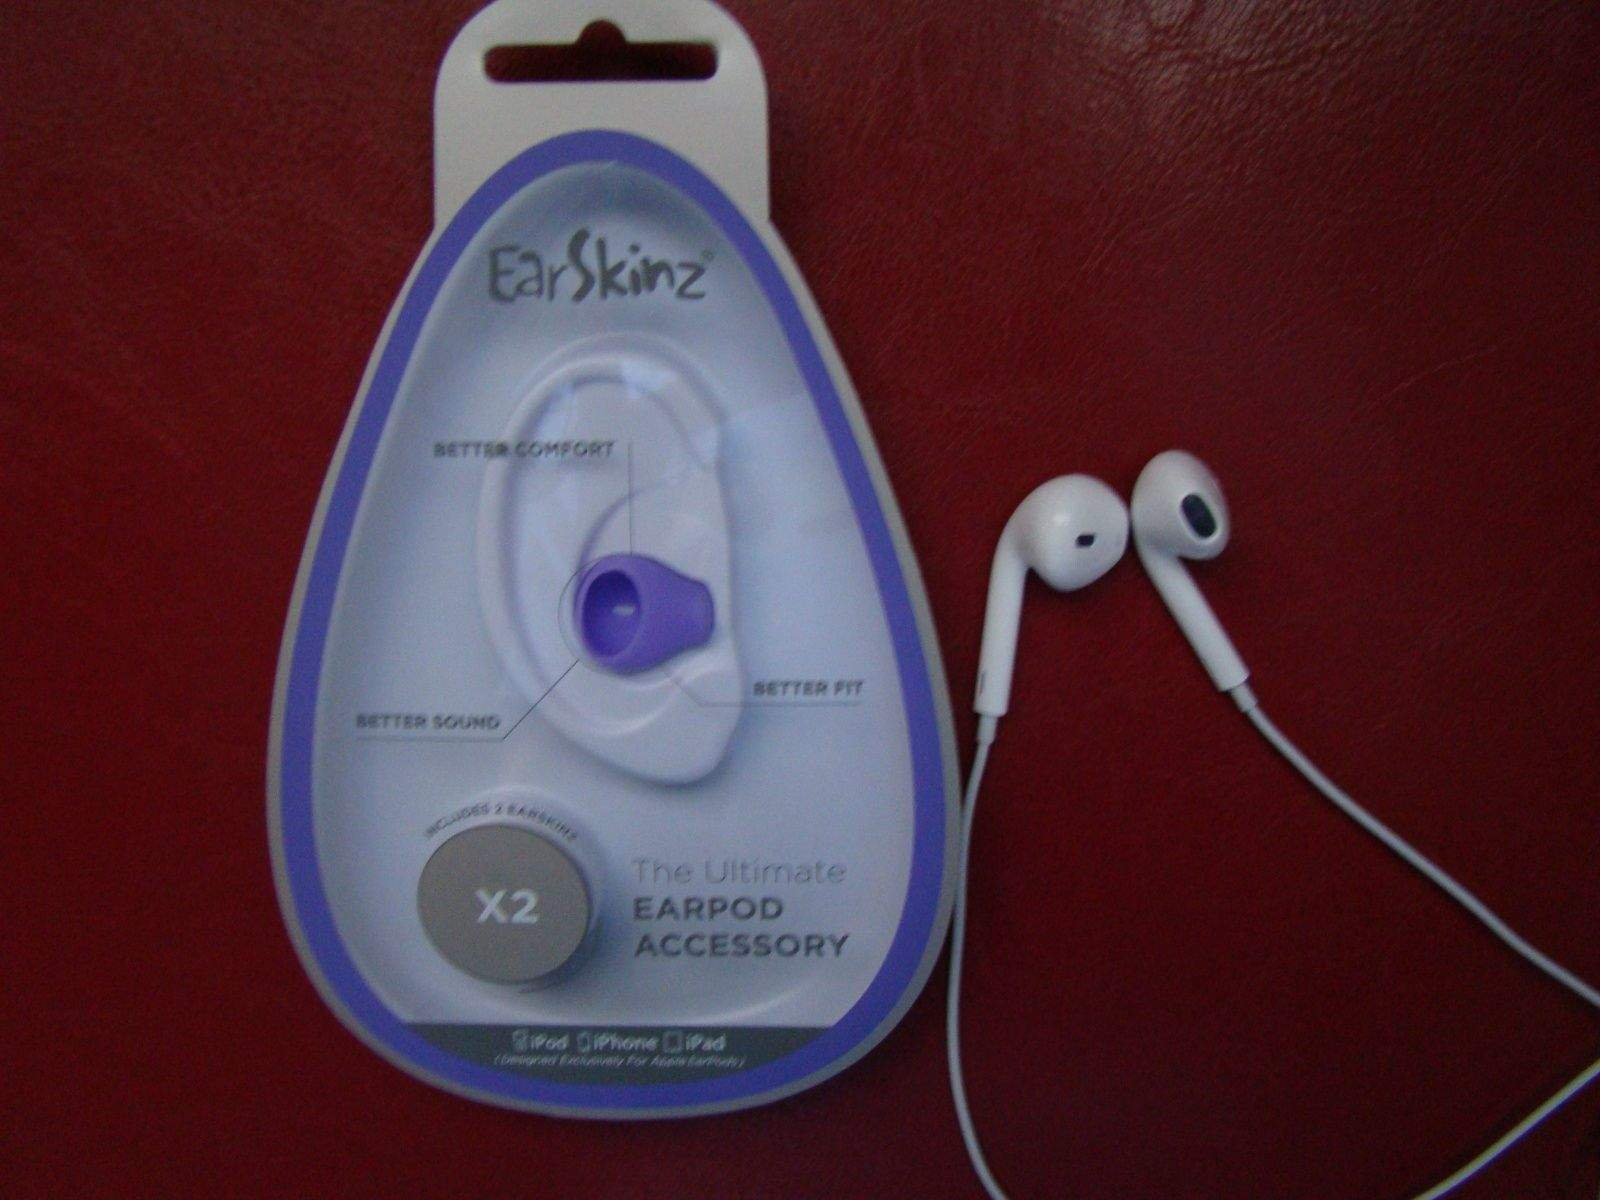 b01809a6b10 I opened the attractive packaging for a pair of purple EarSkinz, and  started to put them on my white set of Apple EarPods. The silicone is thick  enough to ...